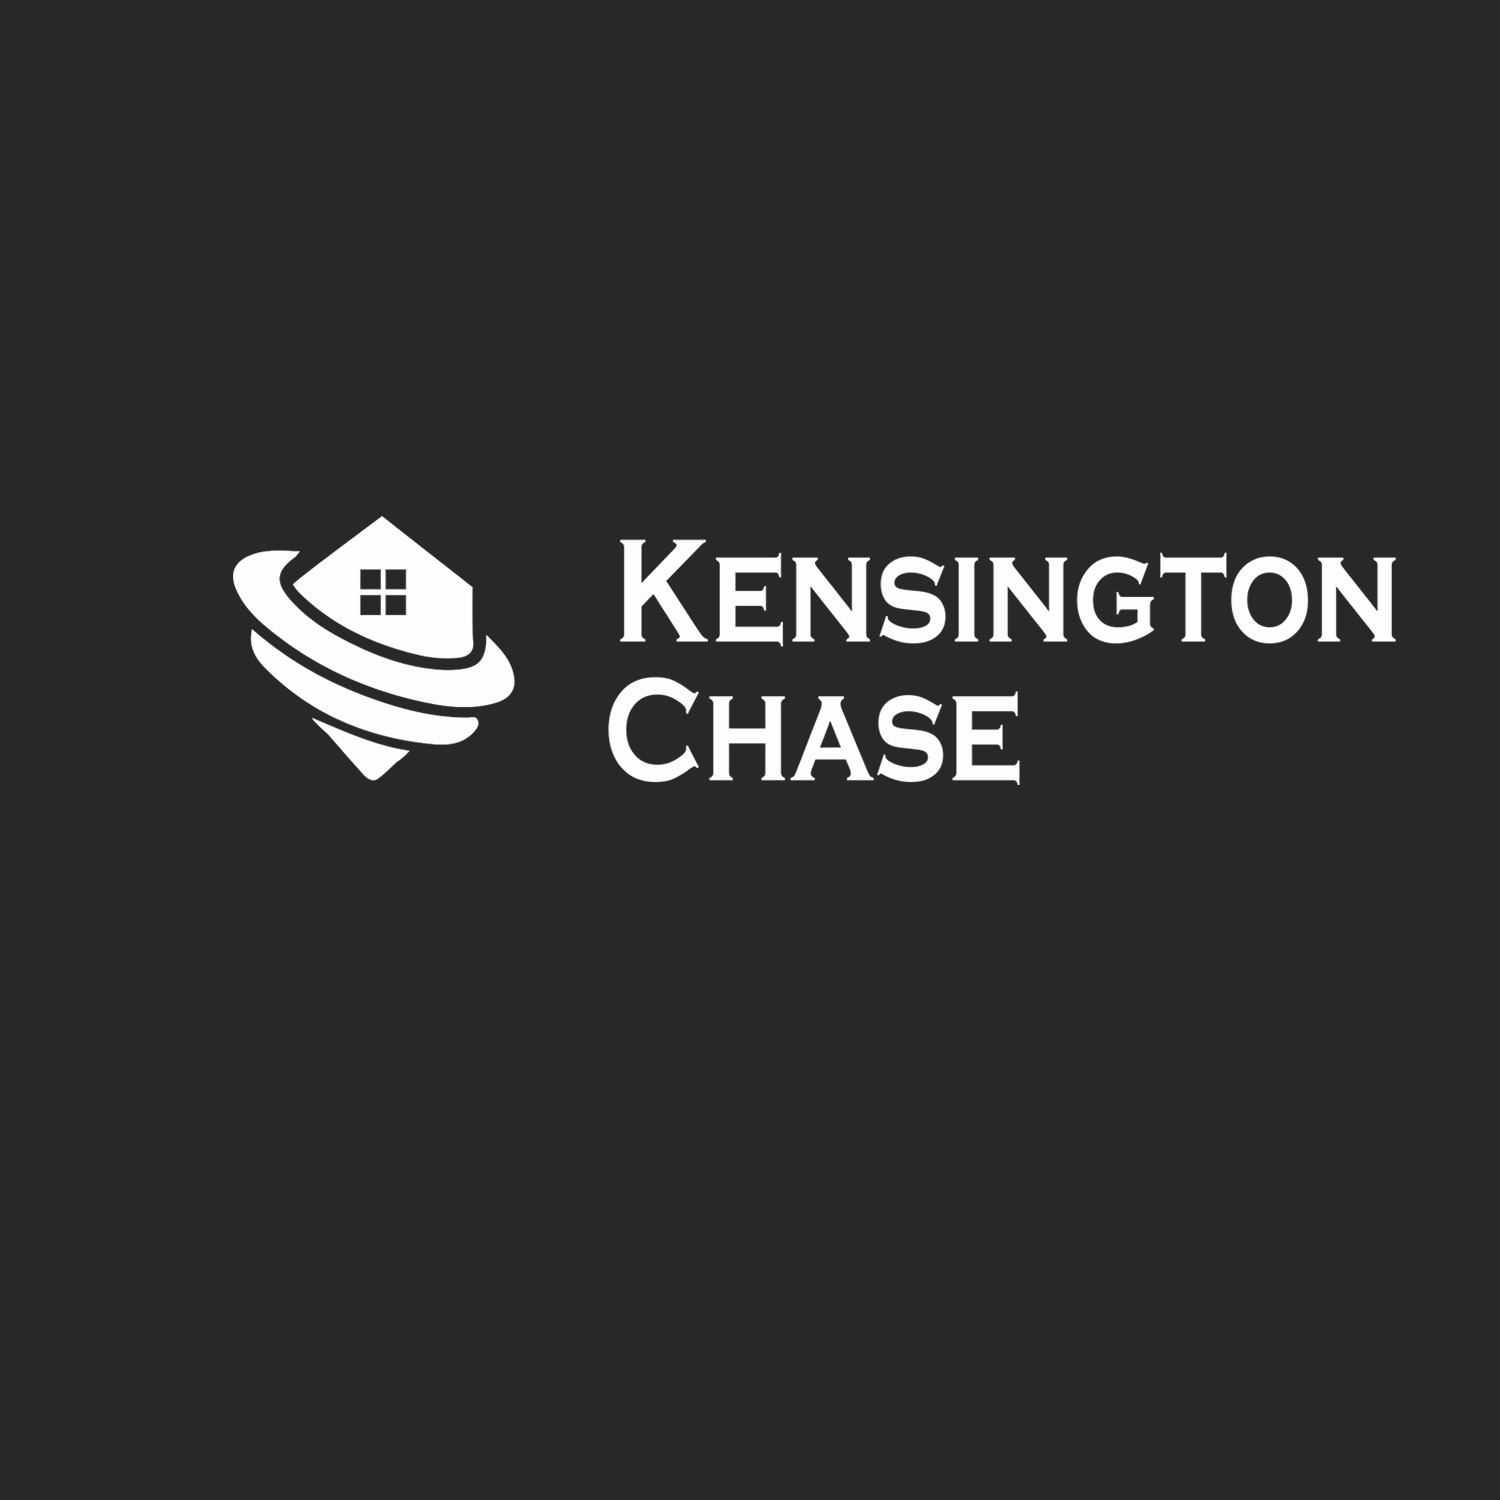 Logo Design by YANUAR ANTABUA - Entry No. 8 in the Logo Design Contest Kensington Chase  Logo Design.